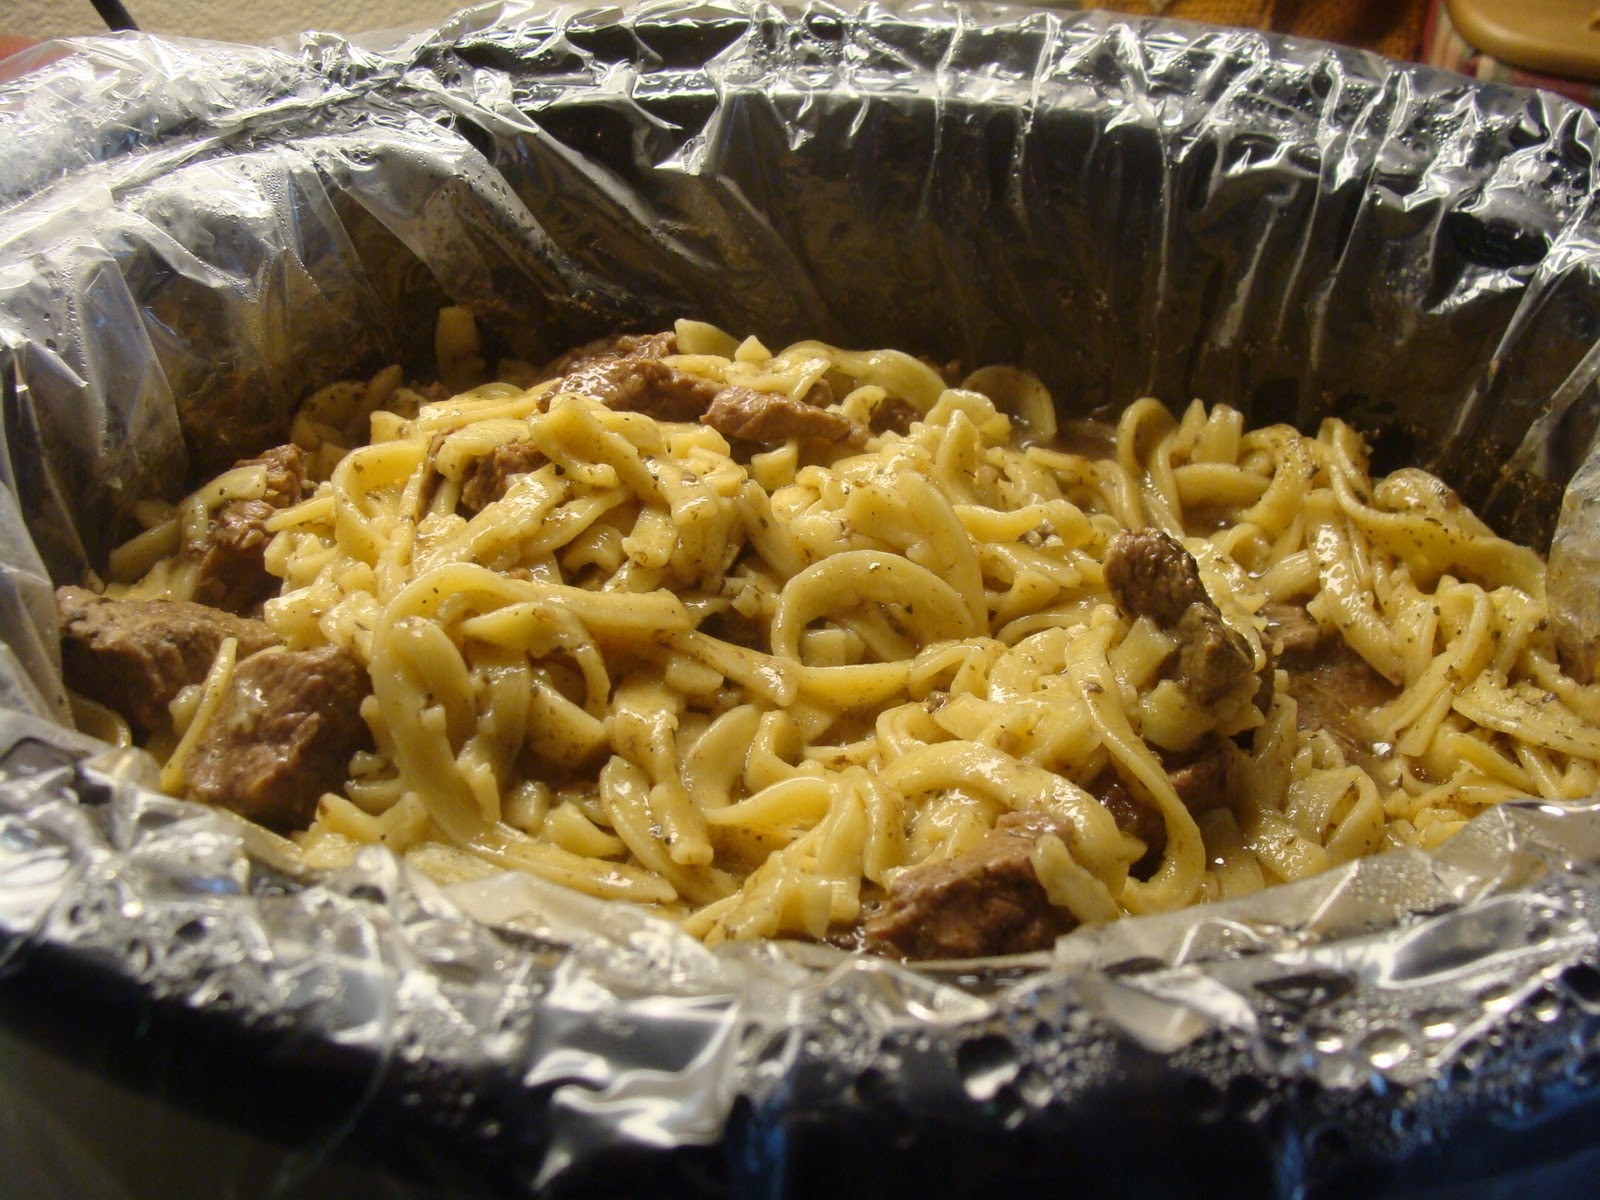 Beef And Egg Noodles  Kristi s Recipe Box Crockpot Beef and Noodles